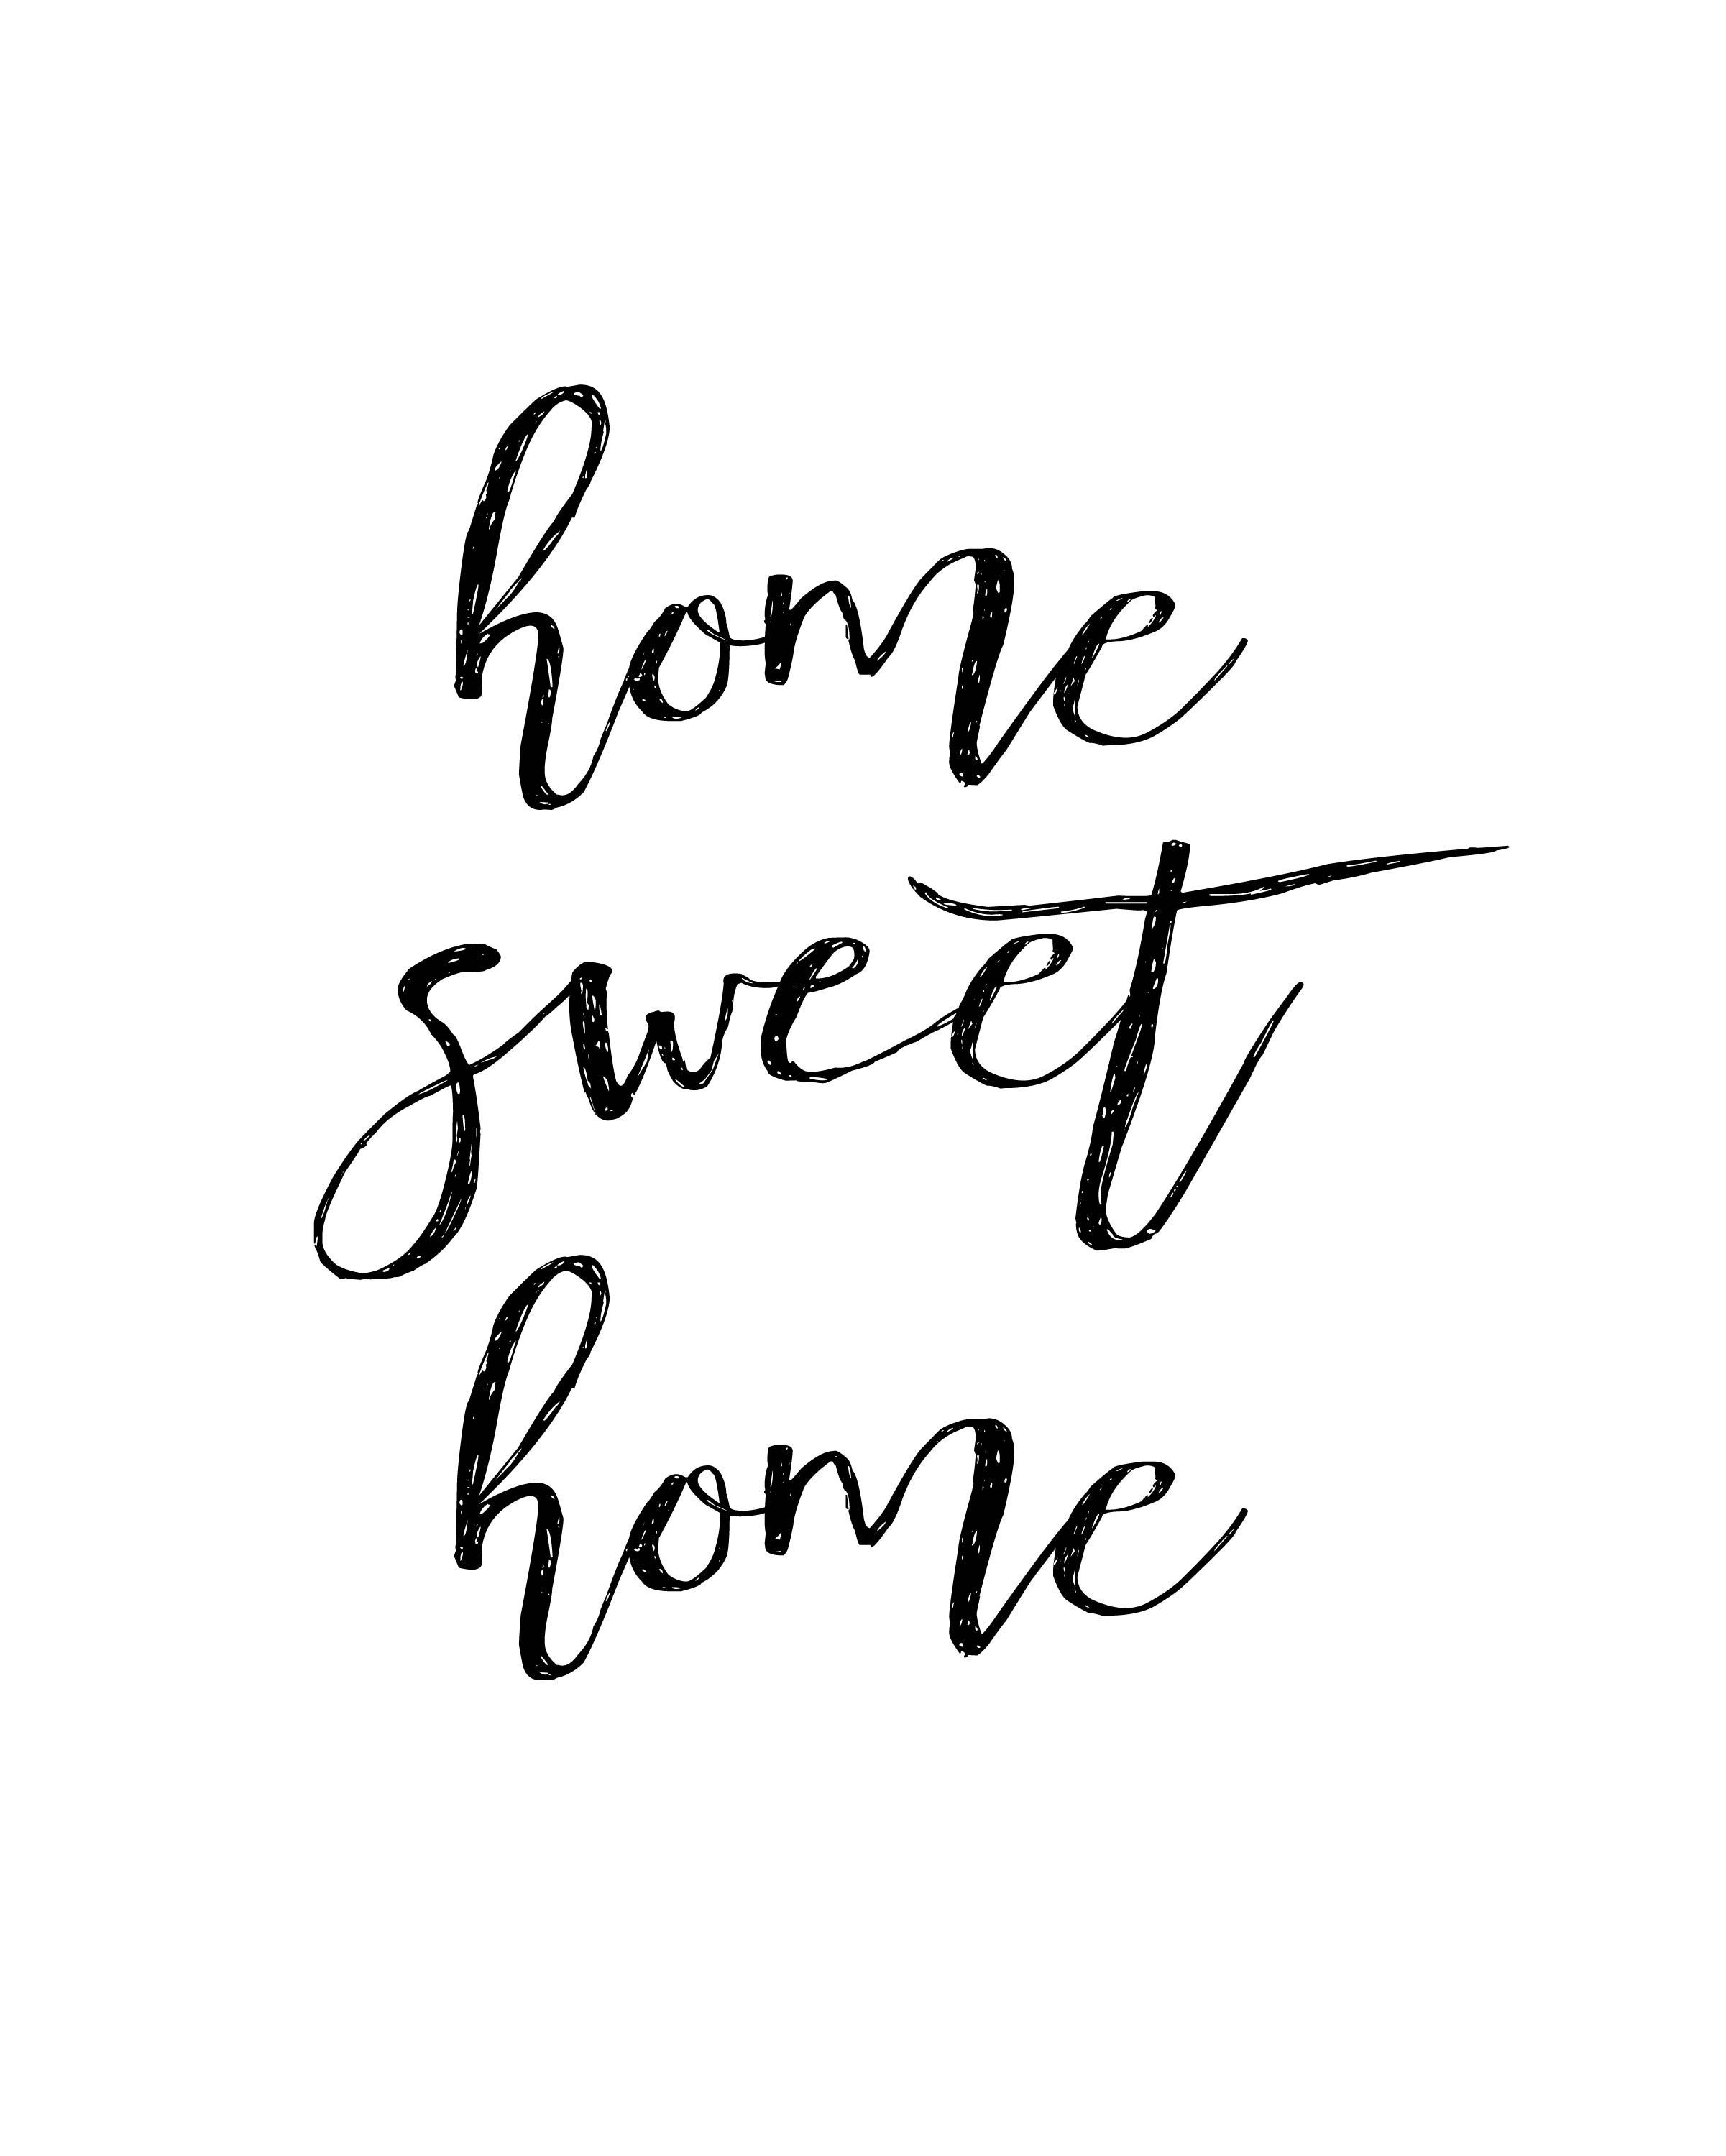 photo regarding Home Sweet Home Printable identified as Cost-free property printable decor - Household Lovable Residence - Tiny Blonde